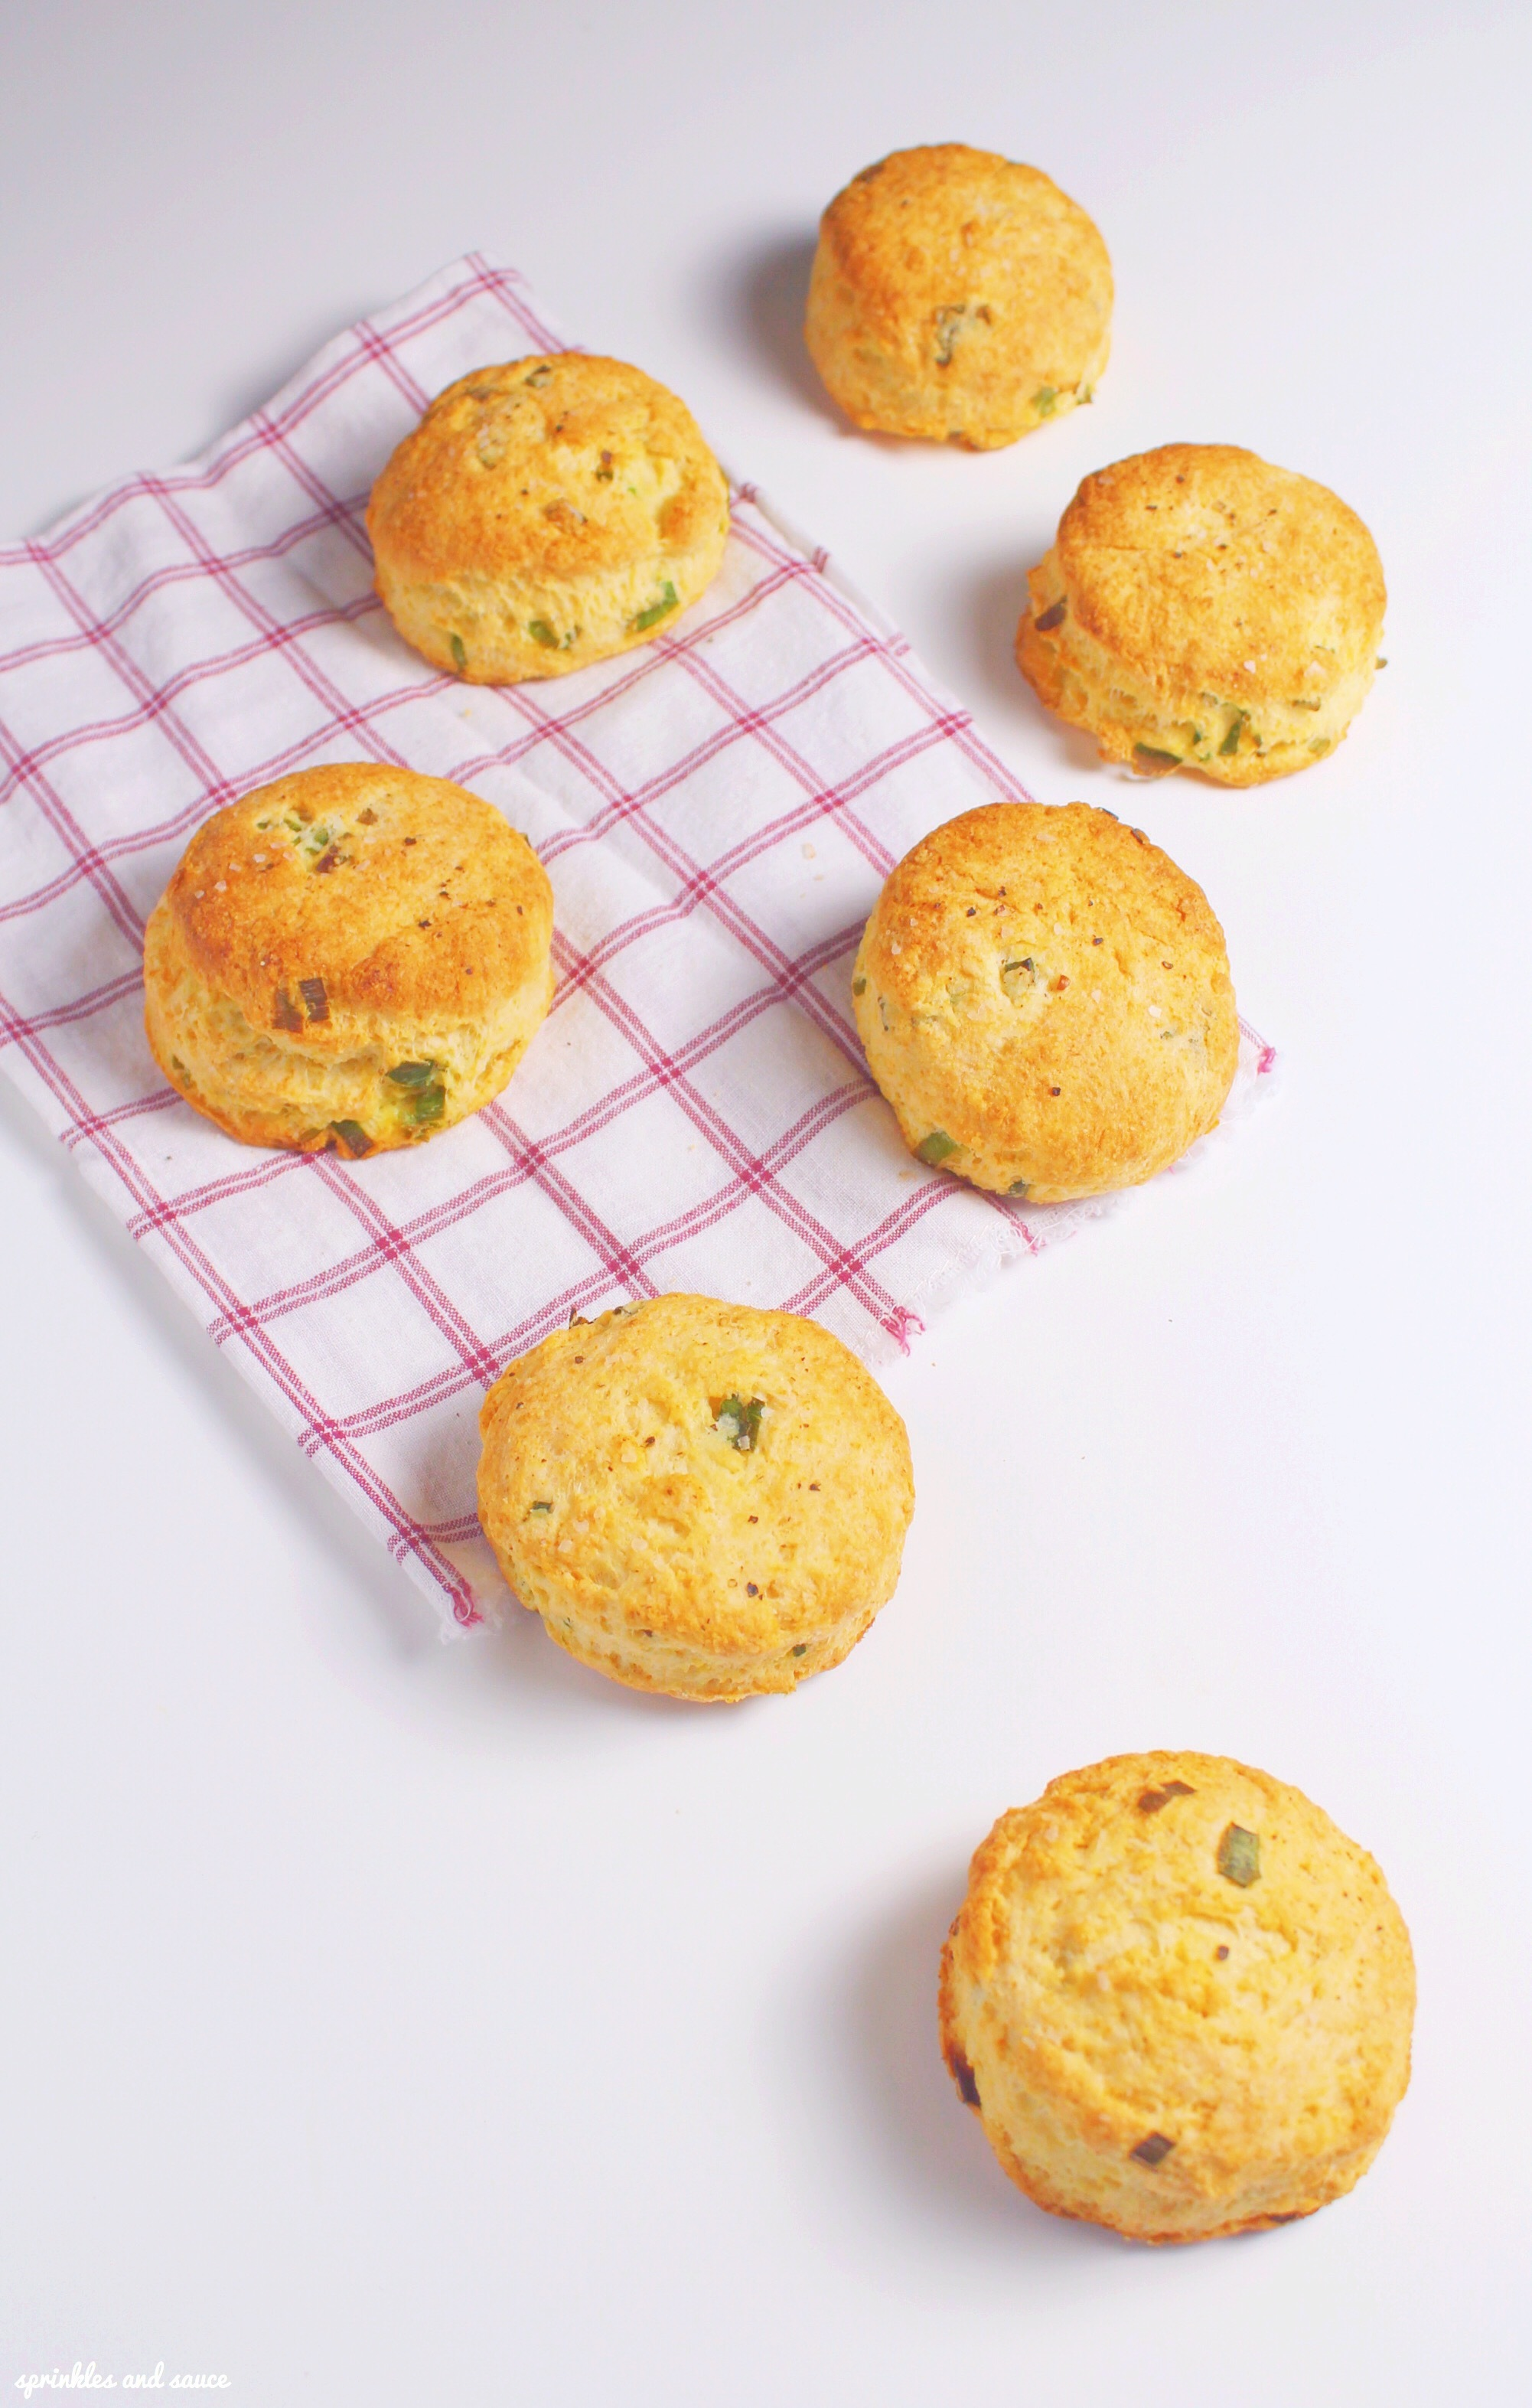 Buttermilk Biscuits with Green Onions, Black Pepper and Sea Salt